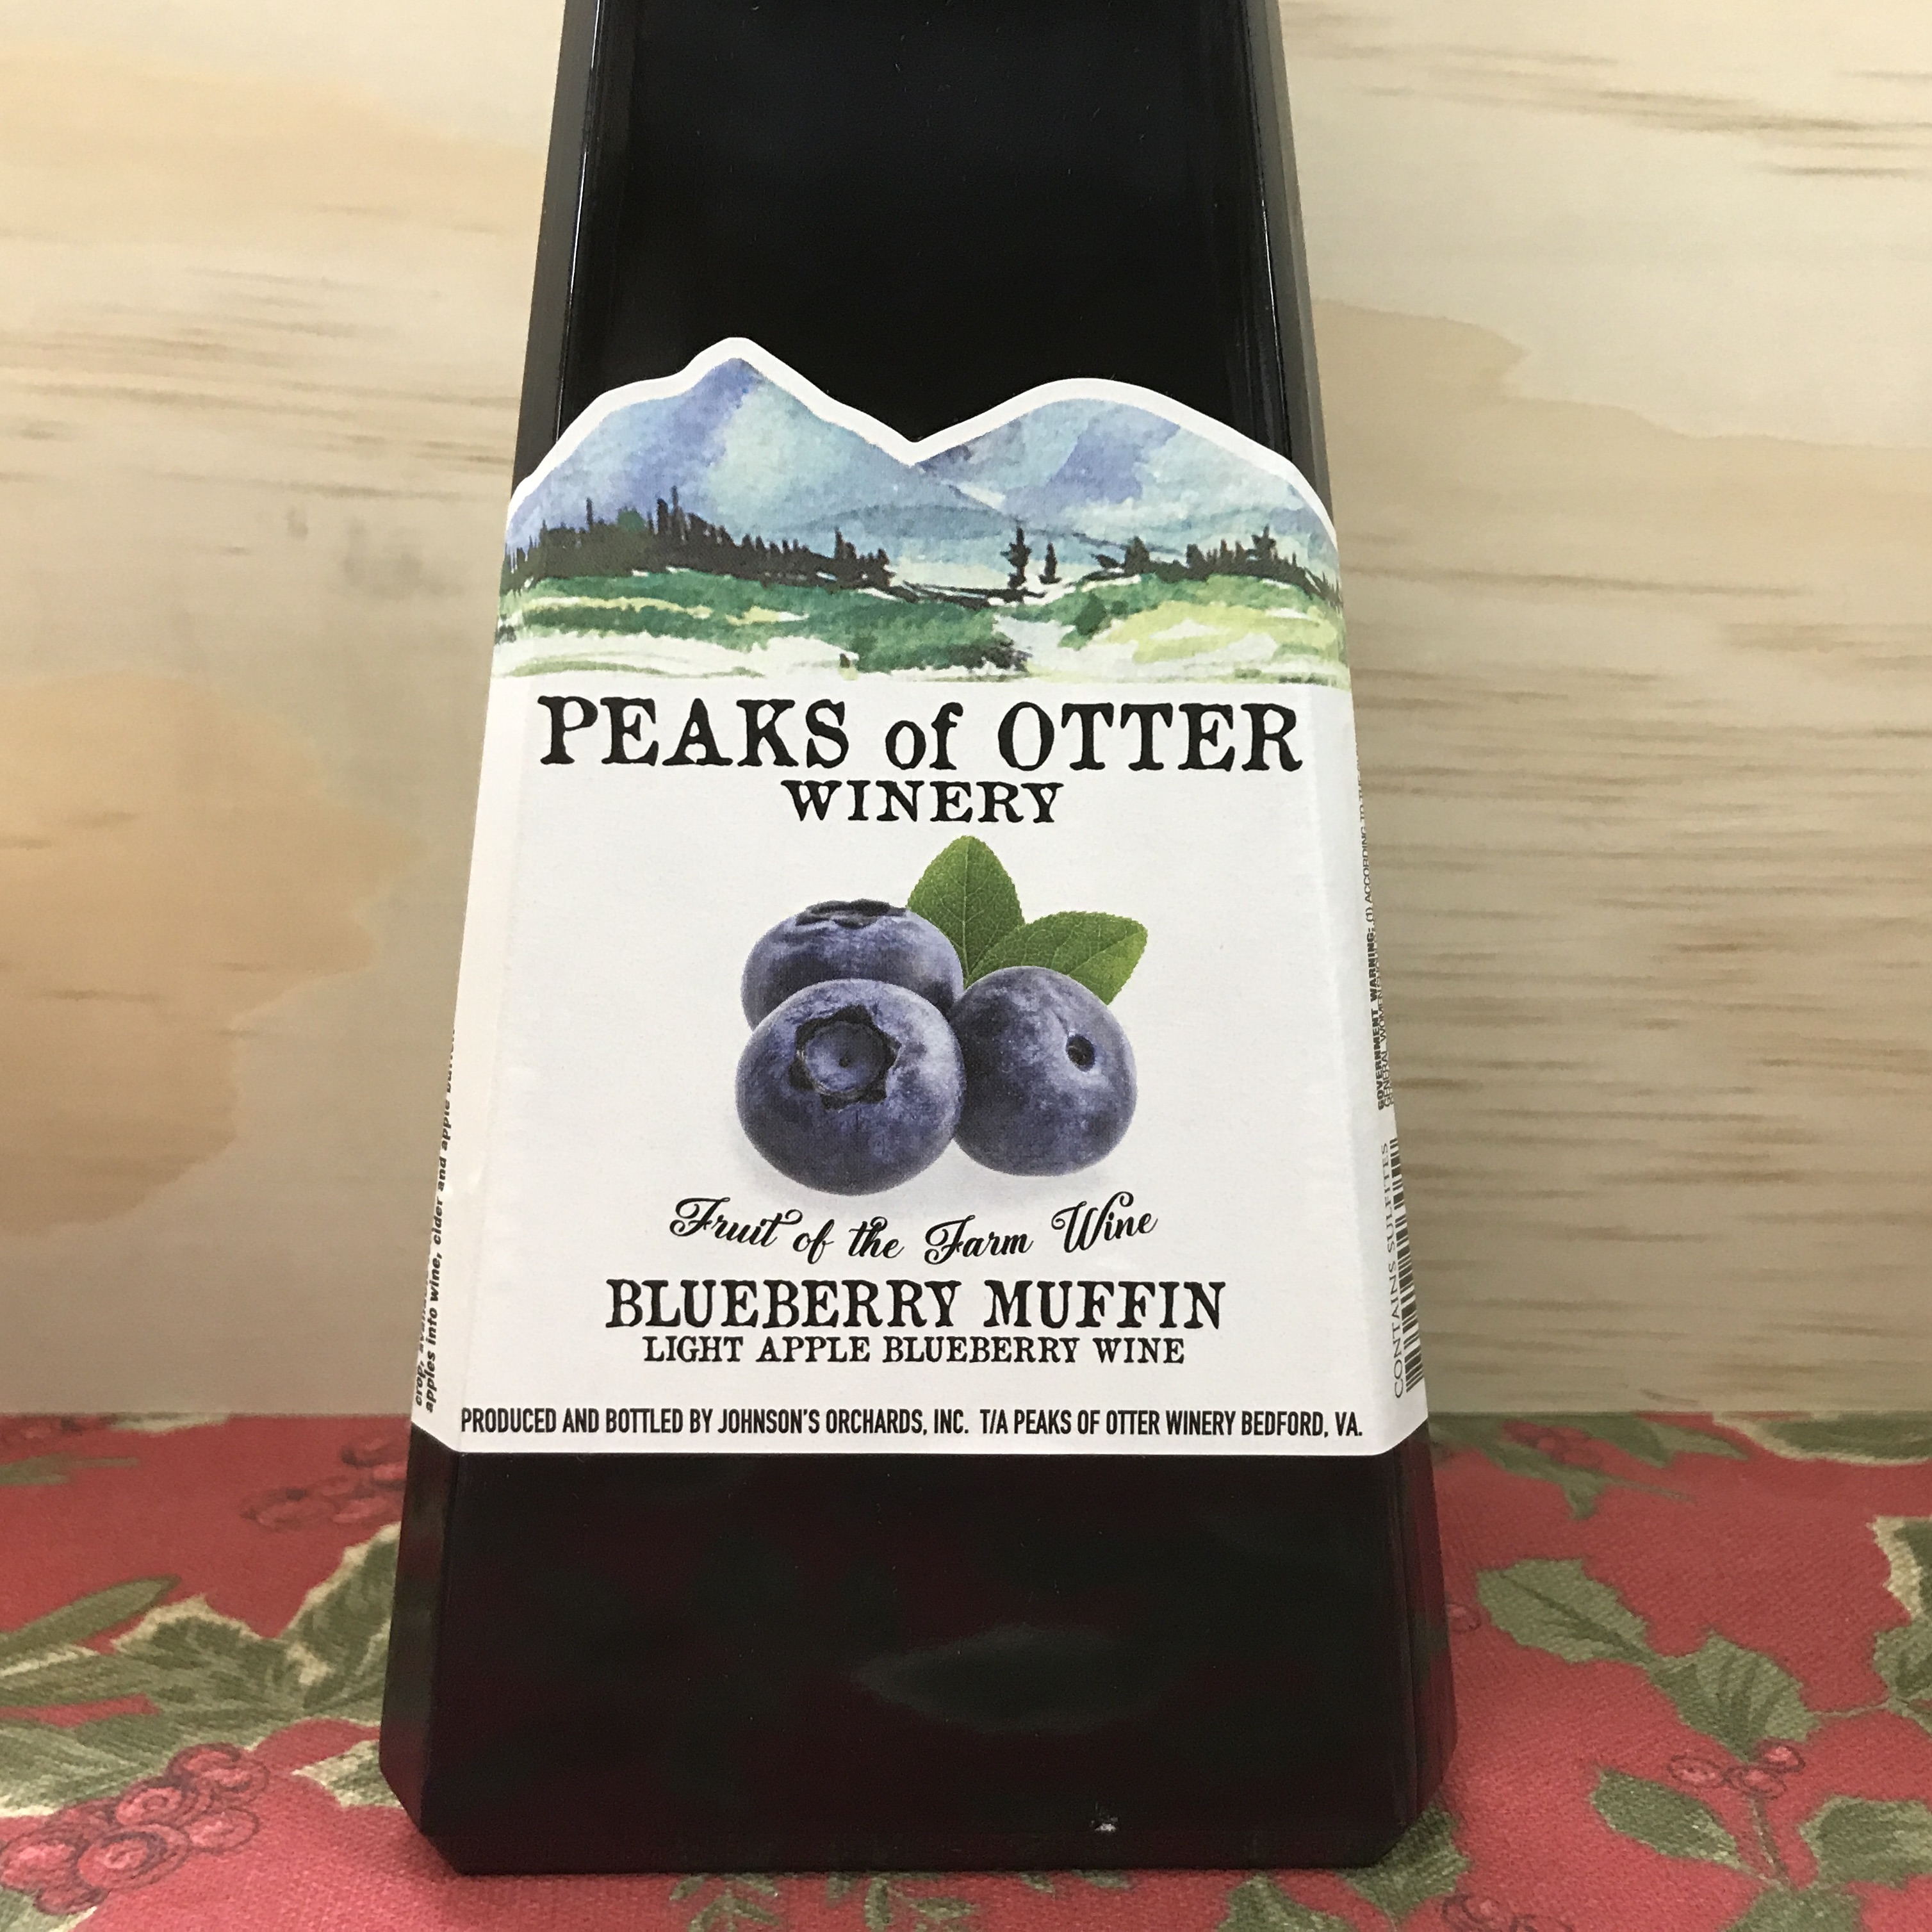 Peaks of Otter Blueberry Muffin Apple Blueberry wine